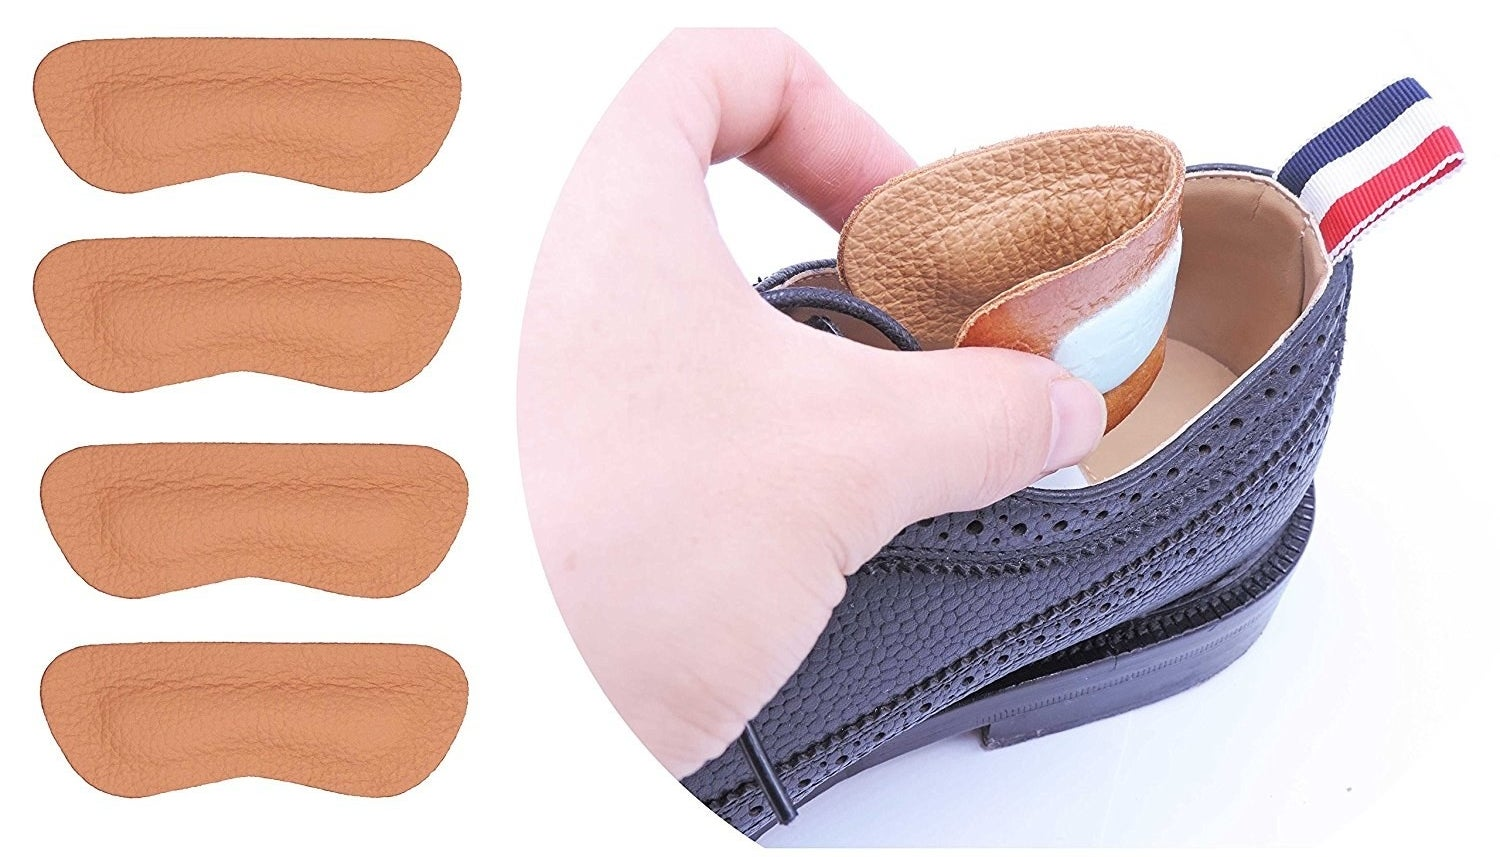 heel protector being put into heel of a shoe